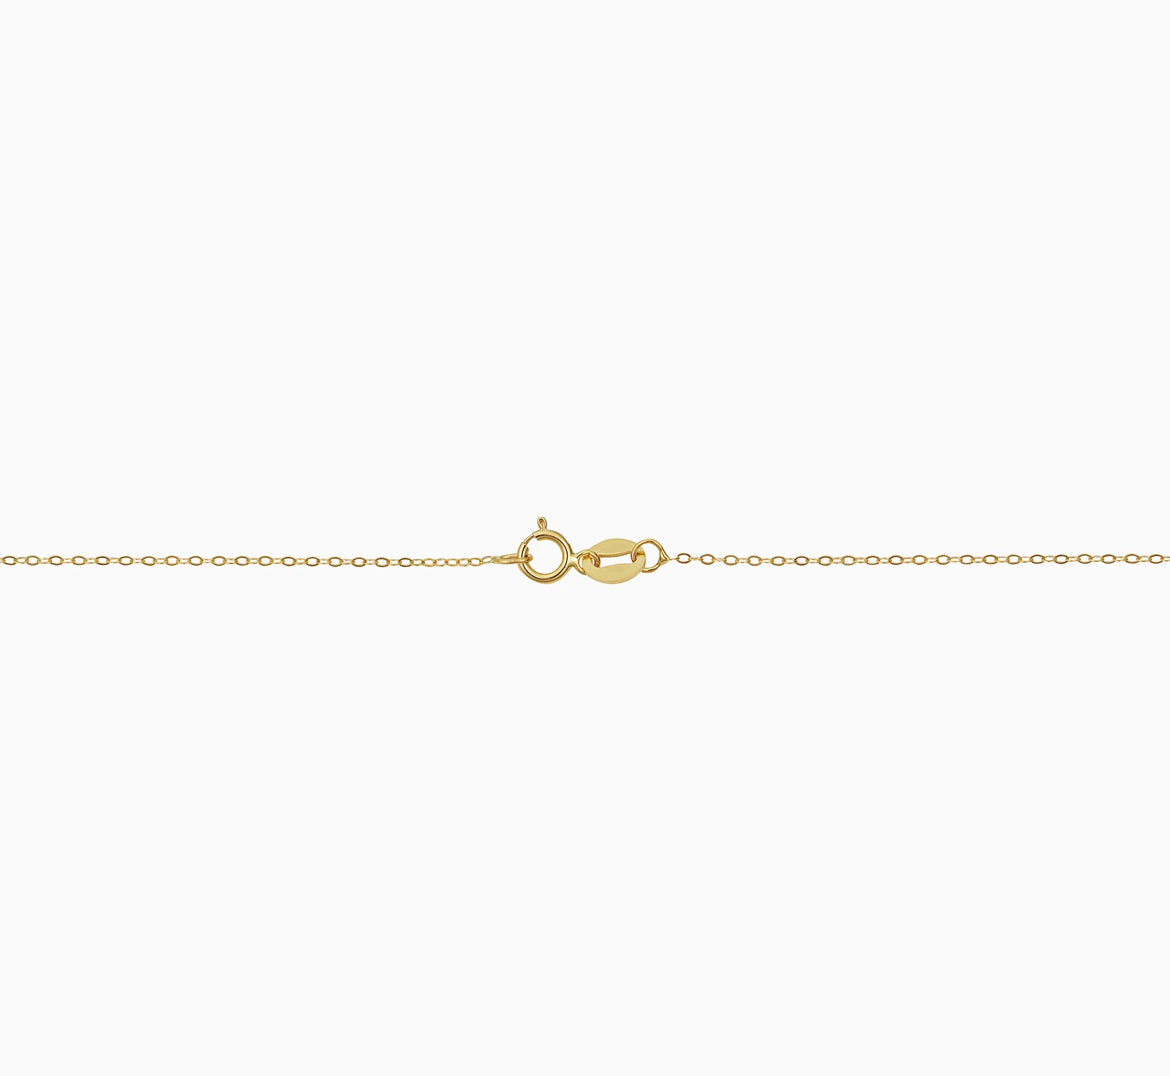 ZODIAC LIBRA NECKLACE